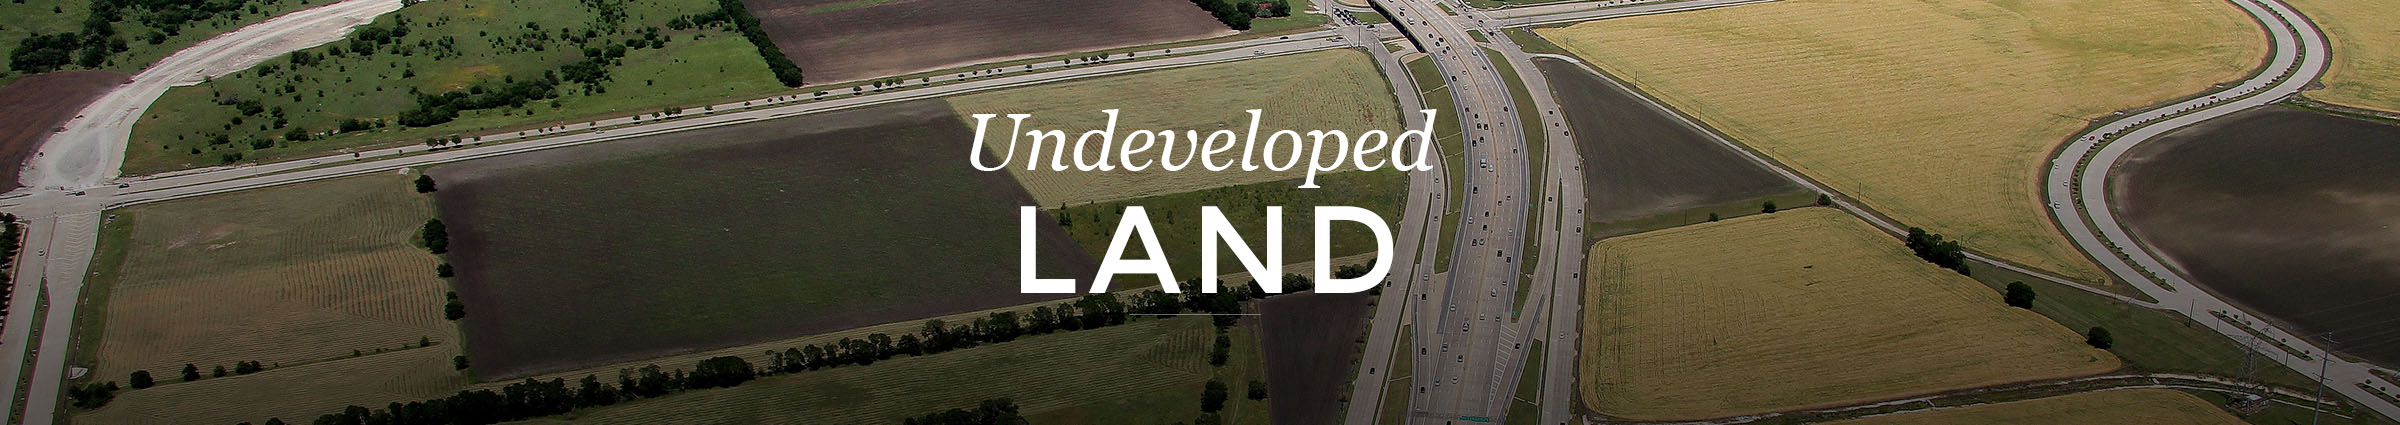 Undeveloped Land